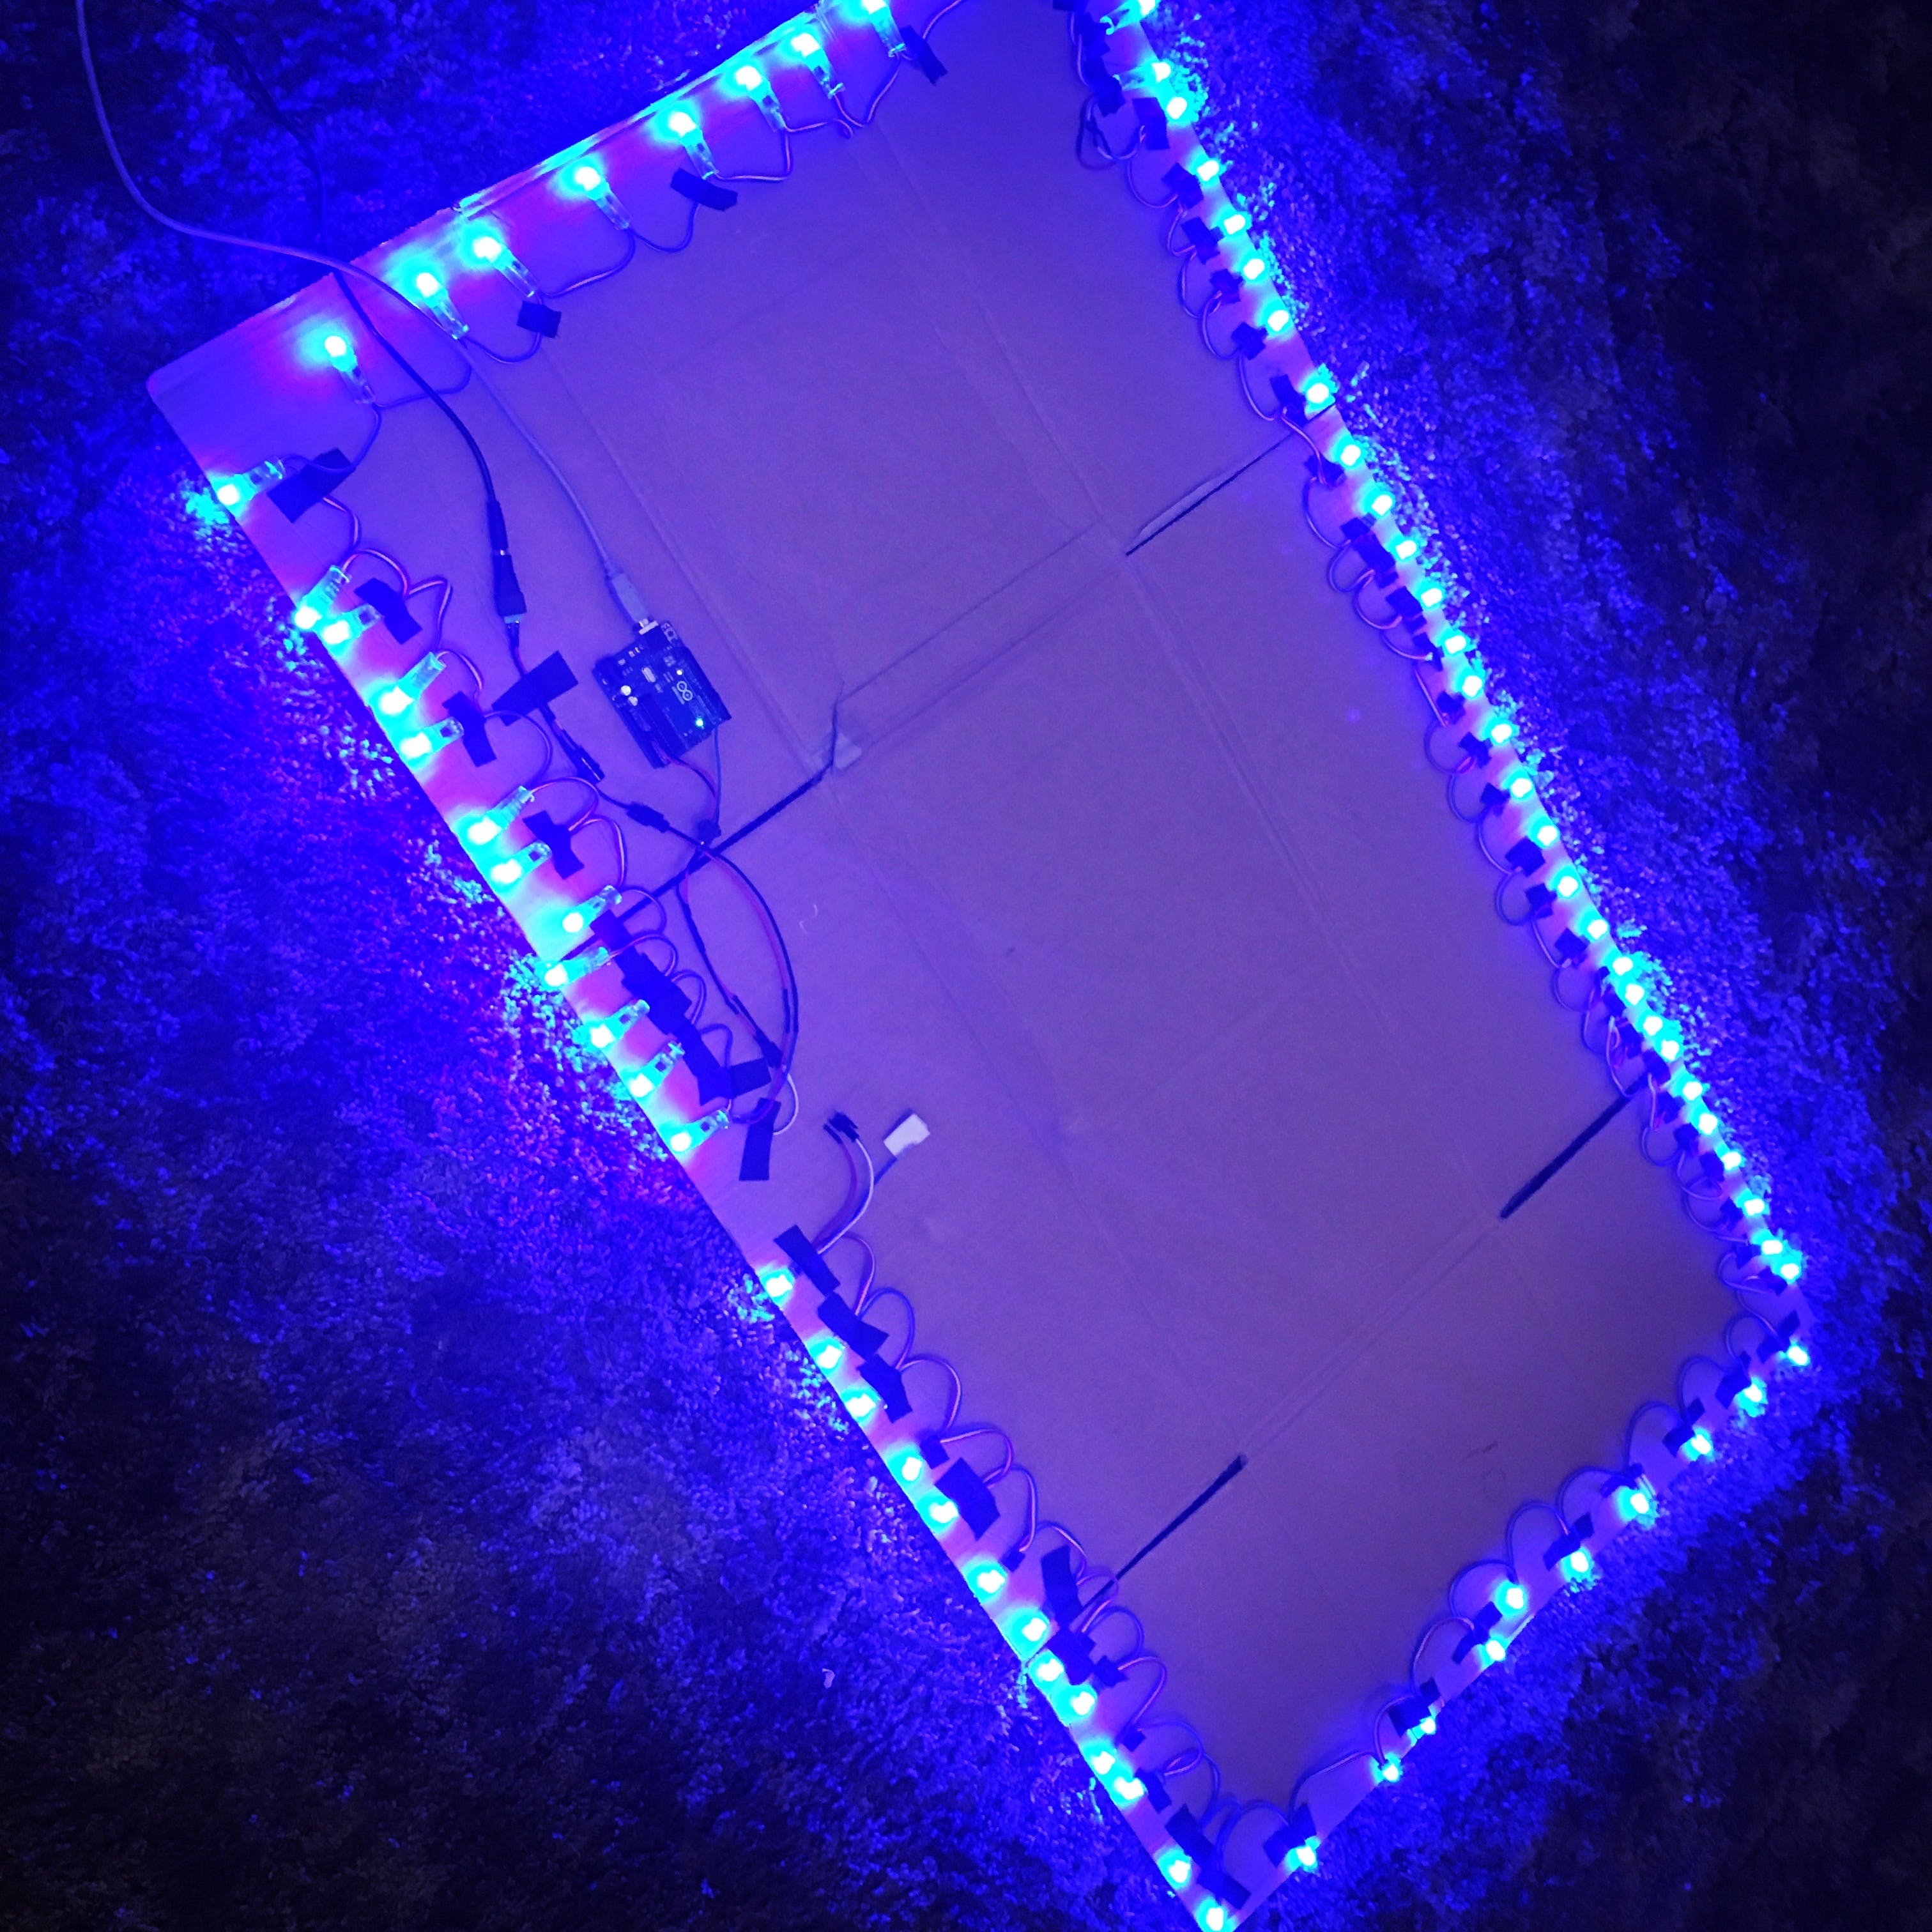 Cardboard, tape and 75 LEDs